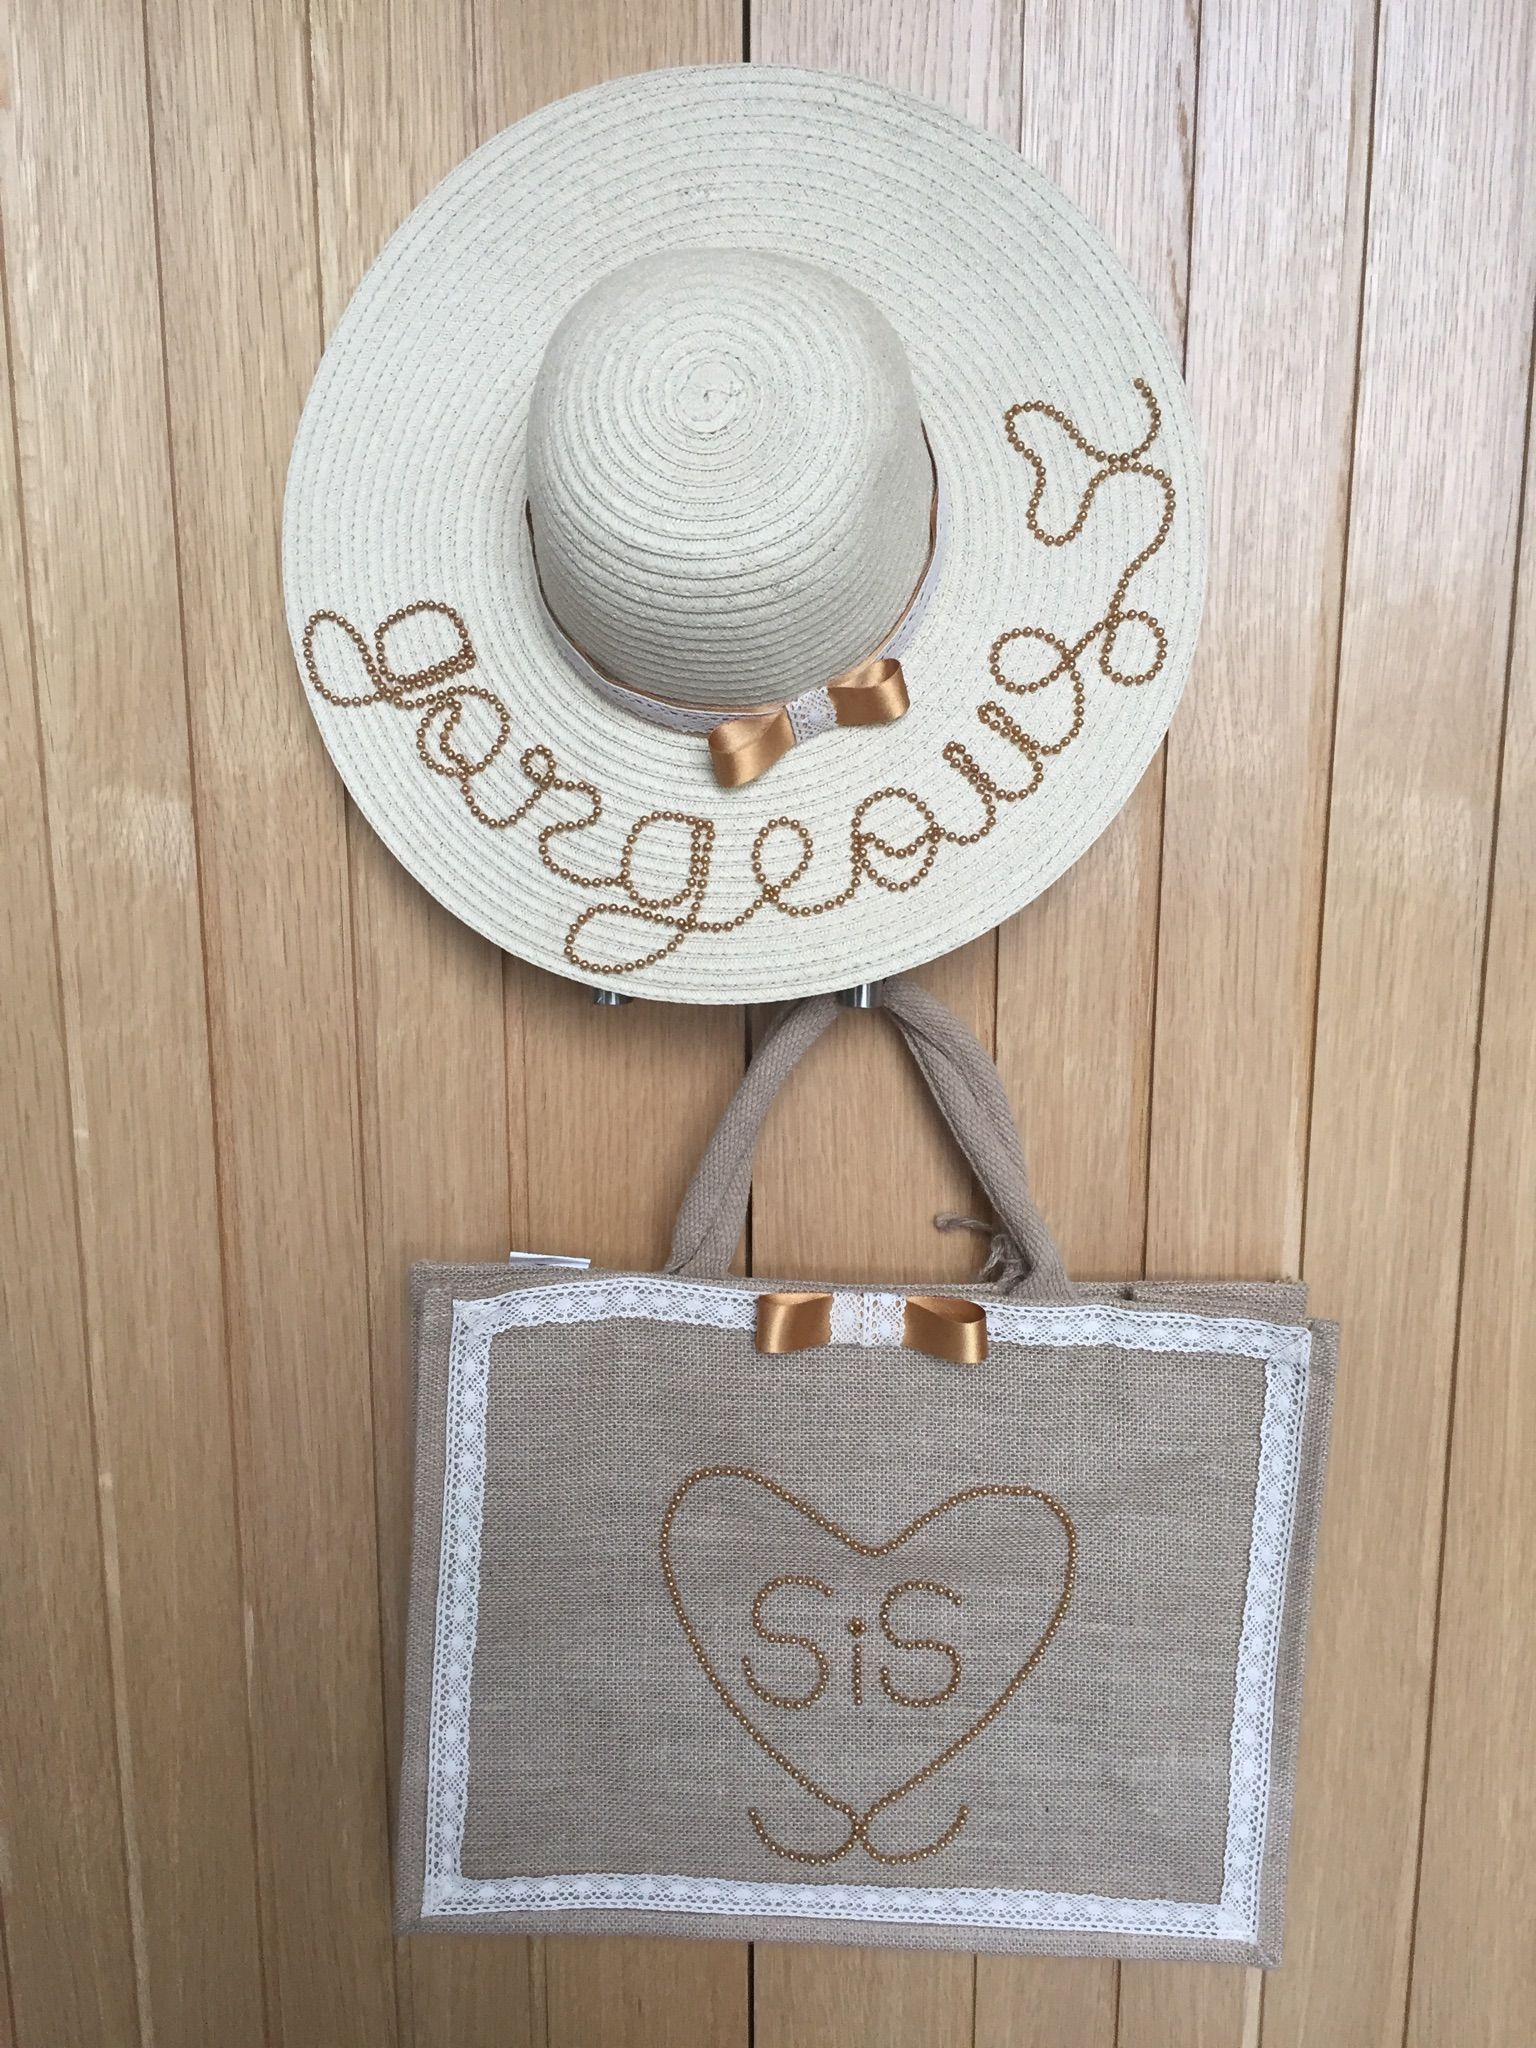 4b4e9bcf Customised hats and bags sun hats floppy hats beach bag at The Personalised  Hat and Bag